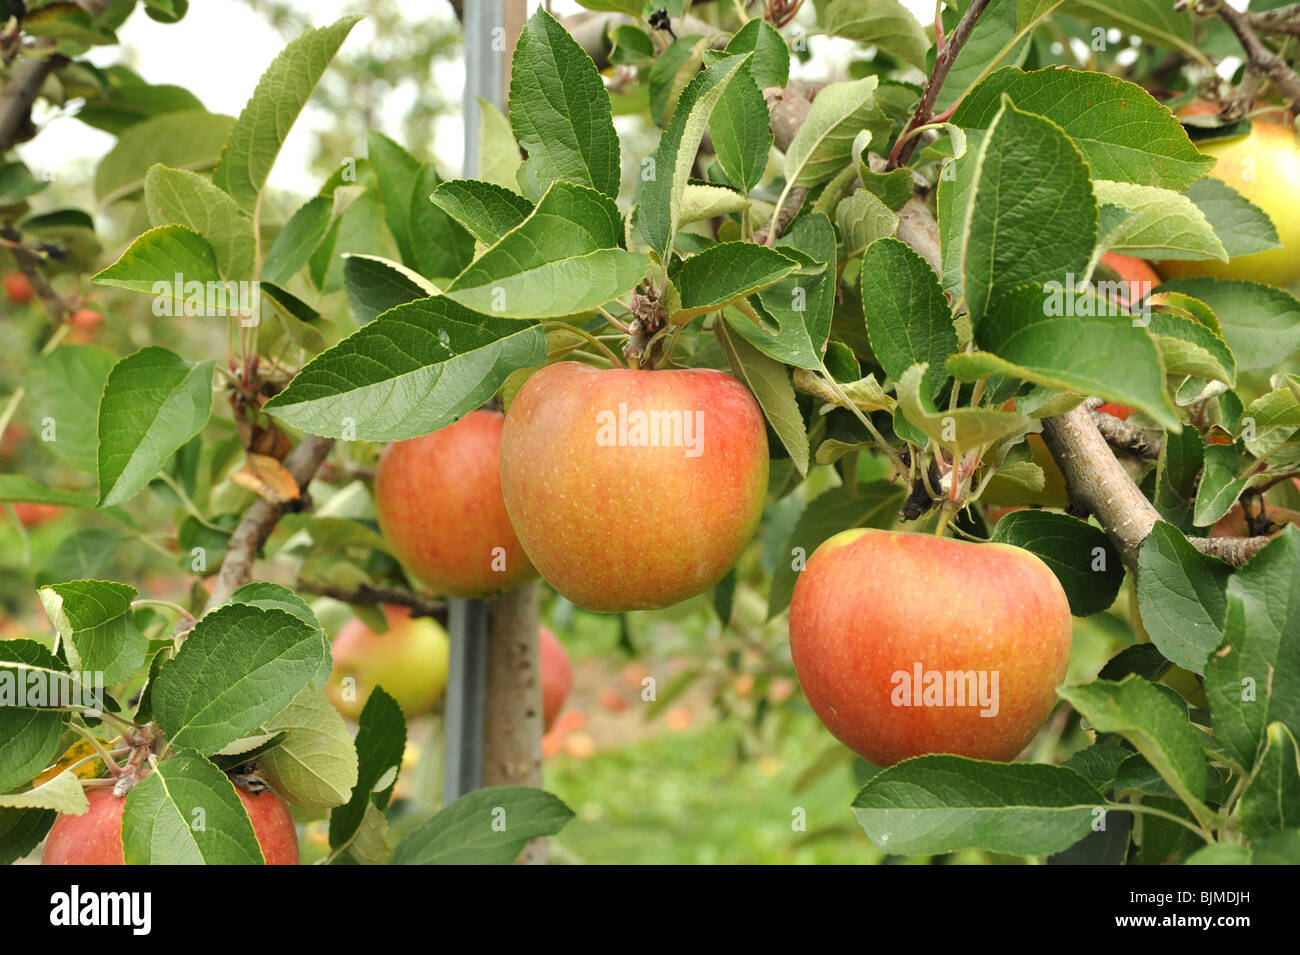 Ripe red apples growing on a tree in an orchard - Stock Image